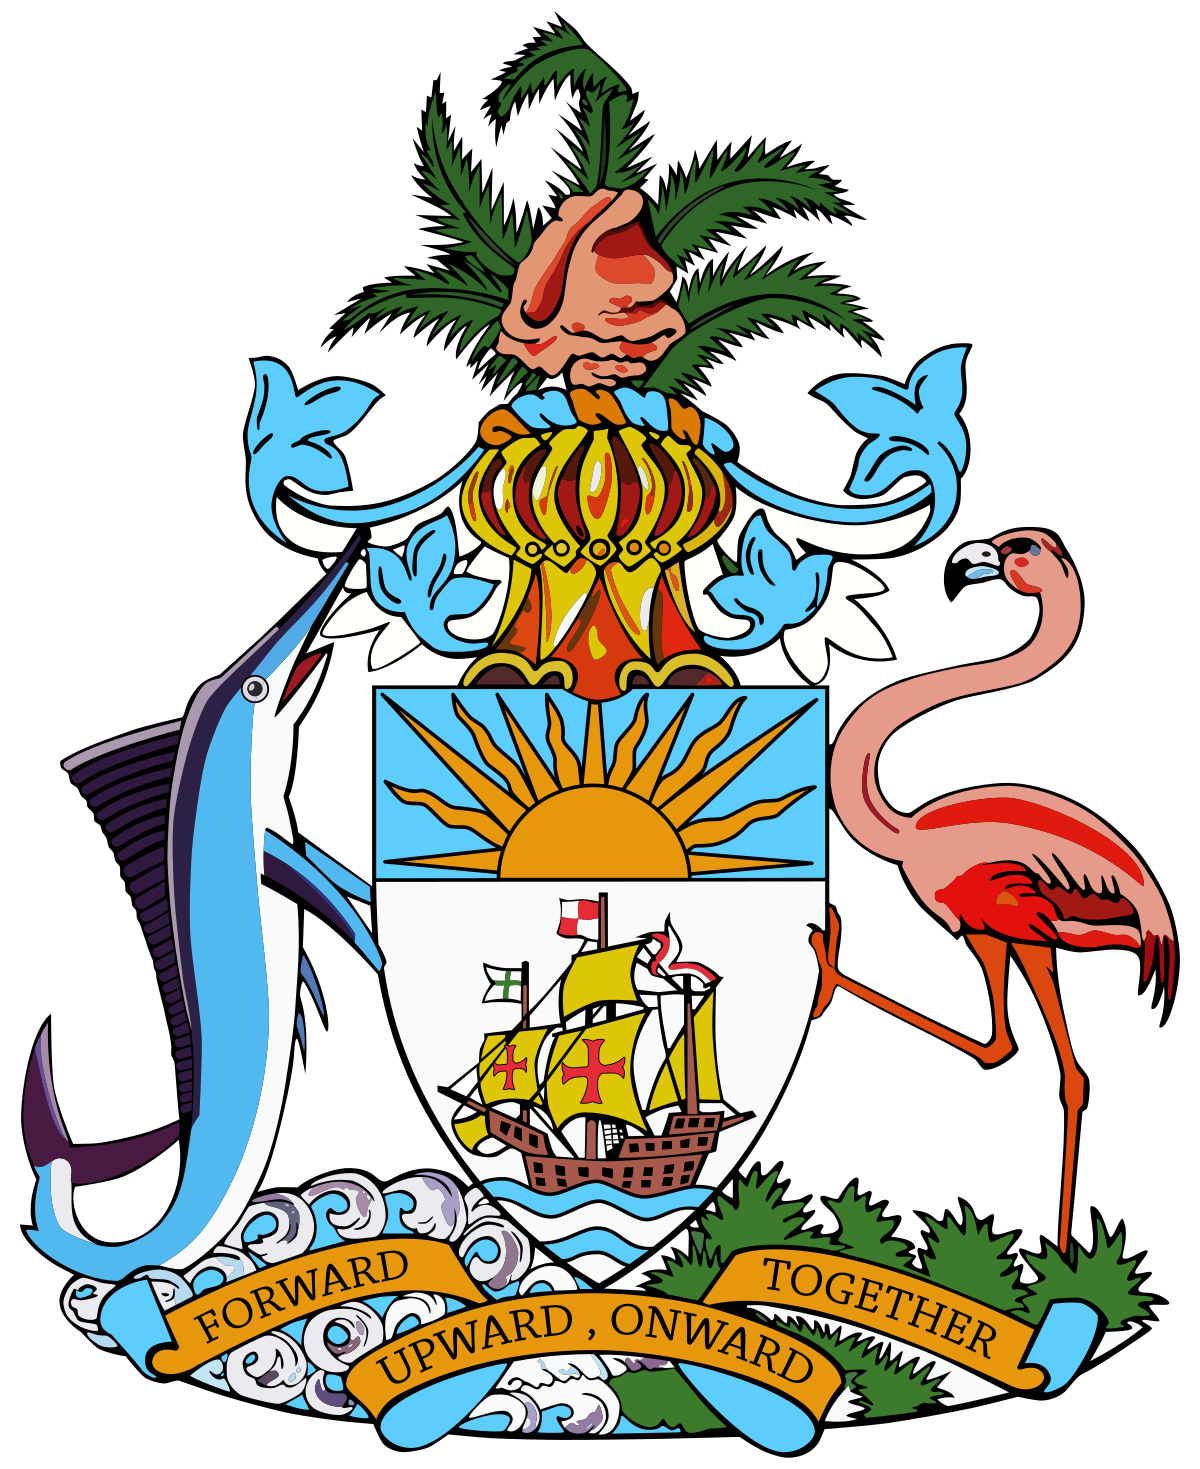 Intolerable acts clipart declaration independence. Monarchy of the bahamas